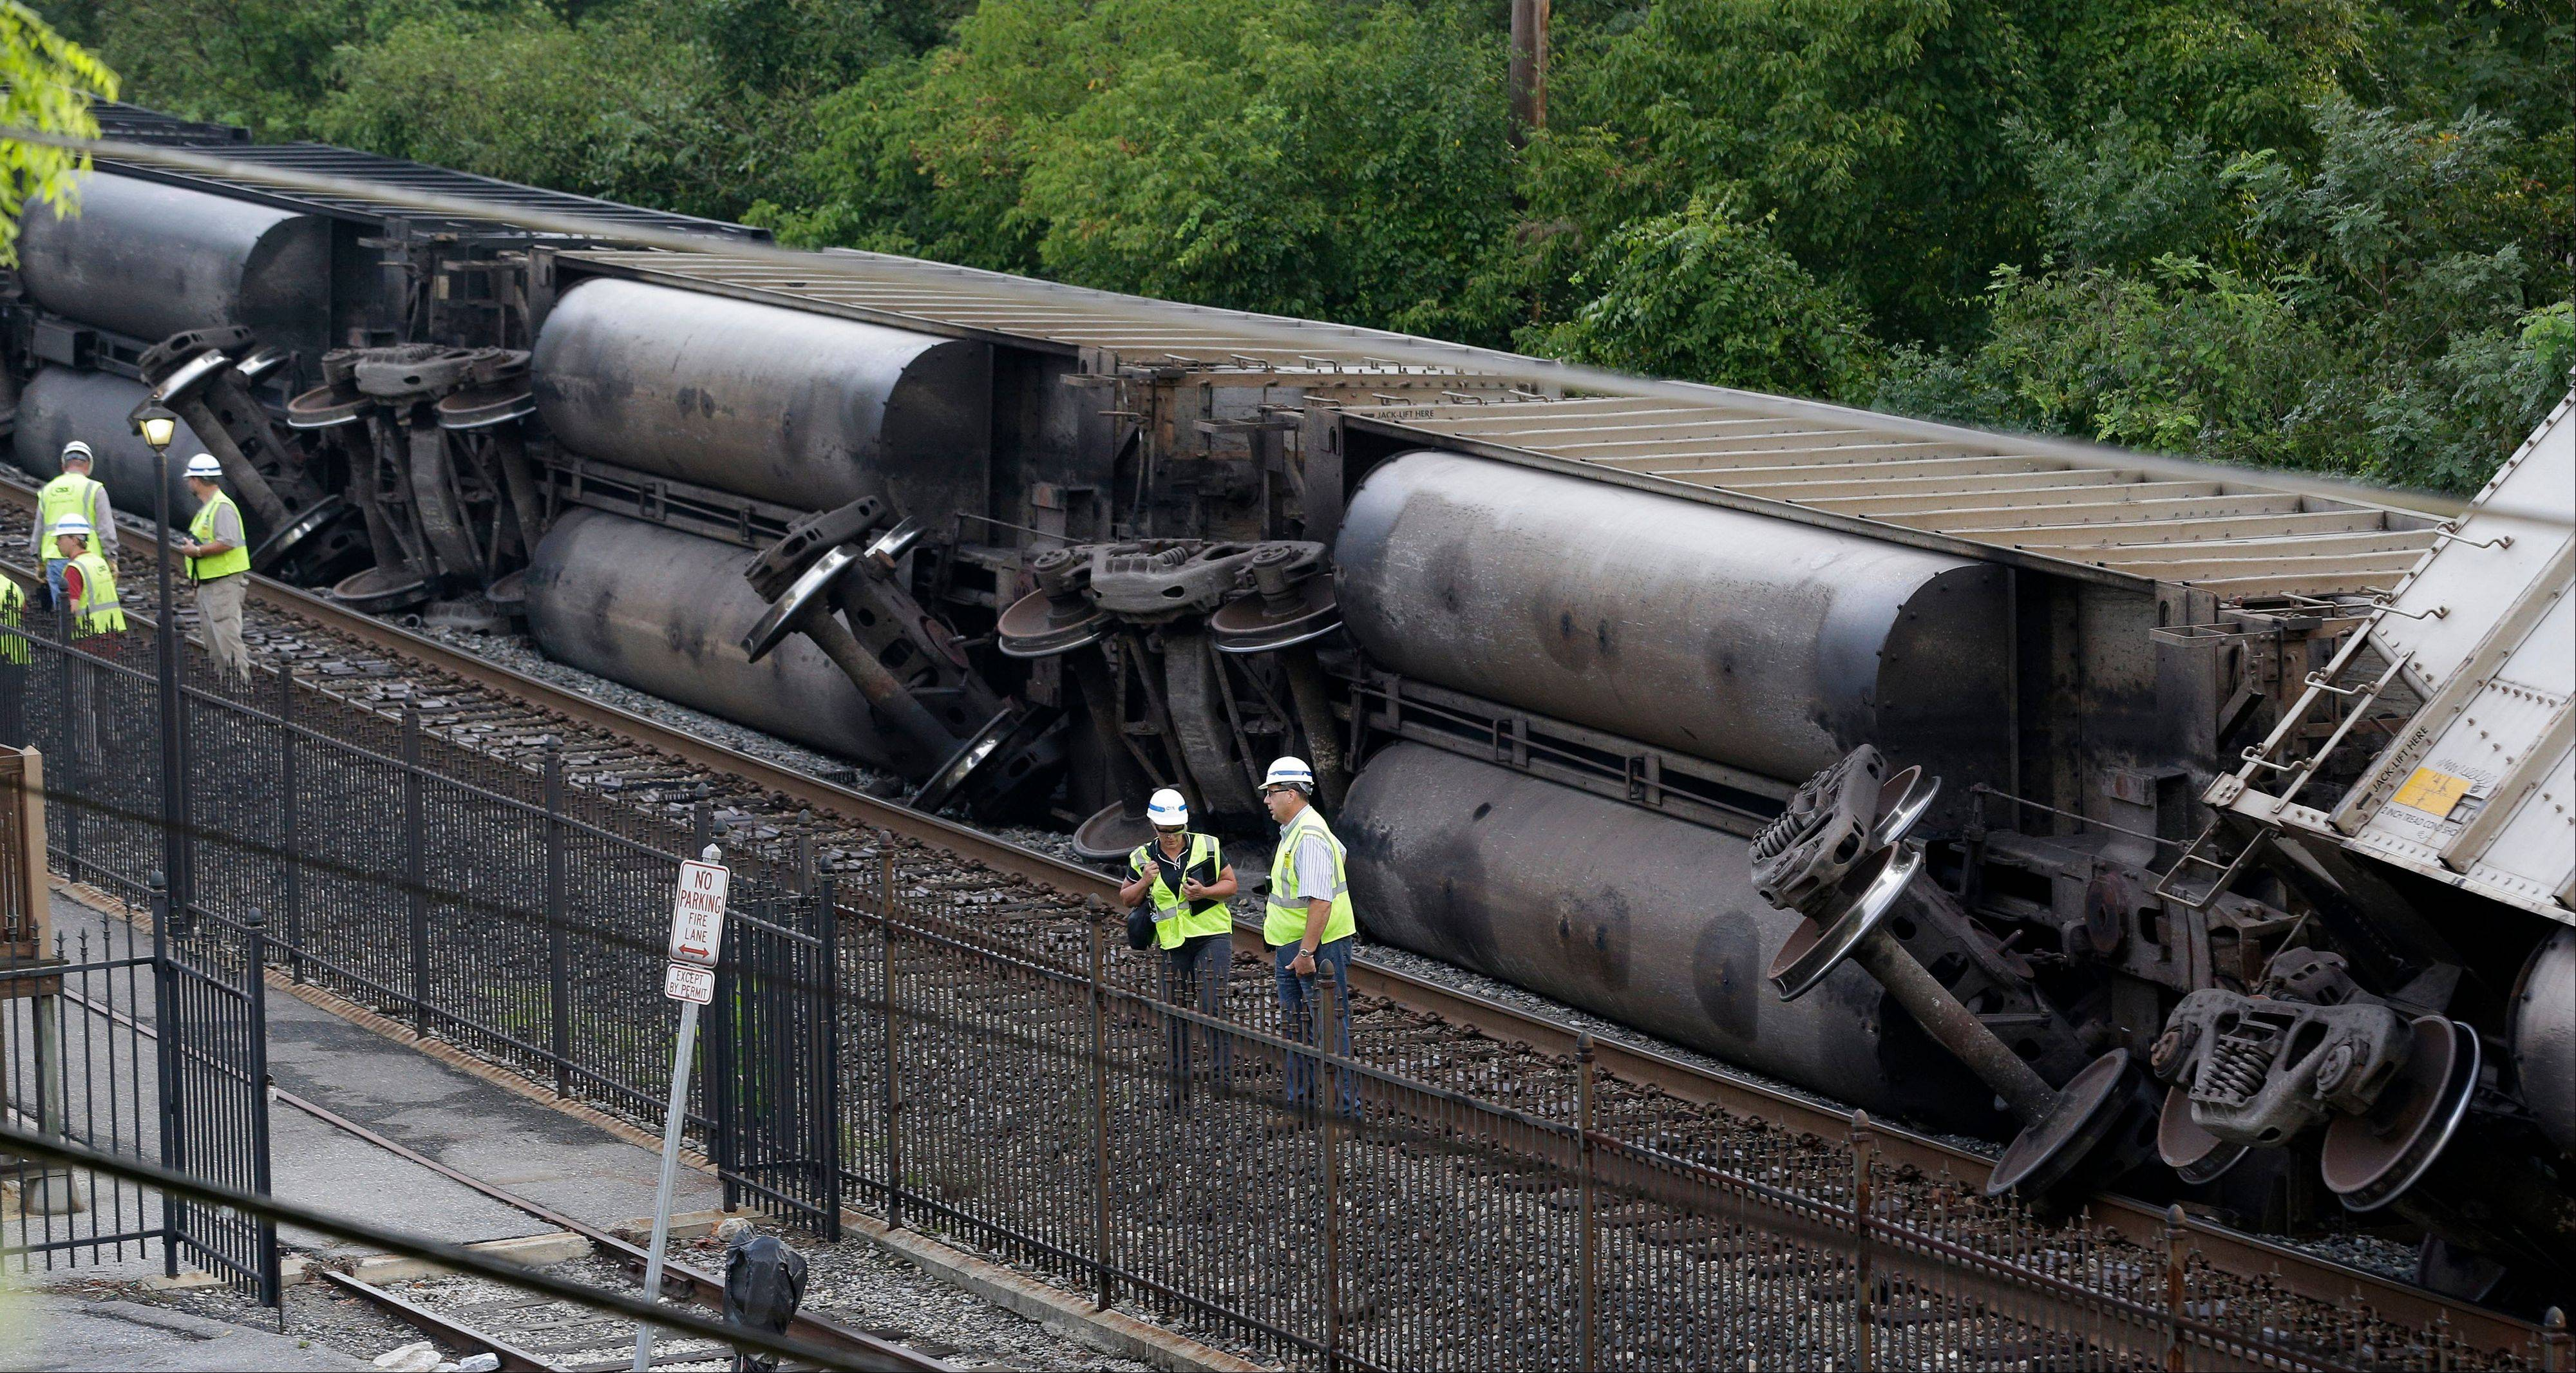 Officials stand near part of a CSX freight train that derailed overnight in Ellicott City, Md., Tuesday, Aug. 21, 2012. Authorities said two people not employed by the railroad were killed in the incident.